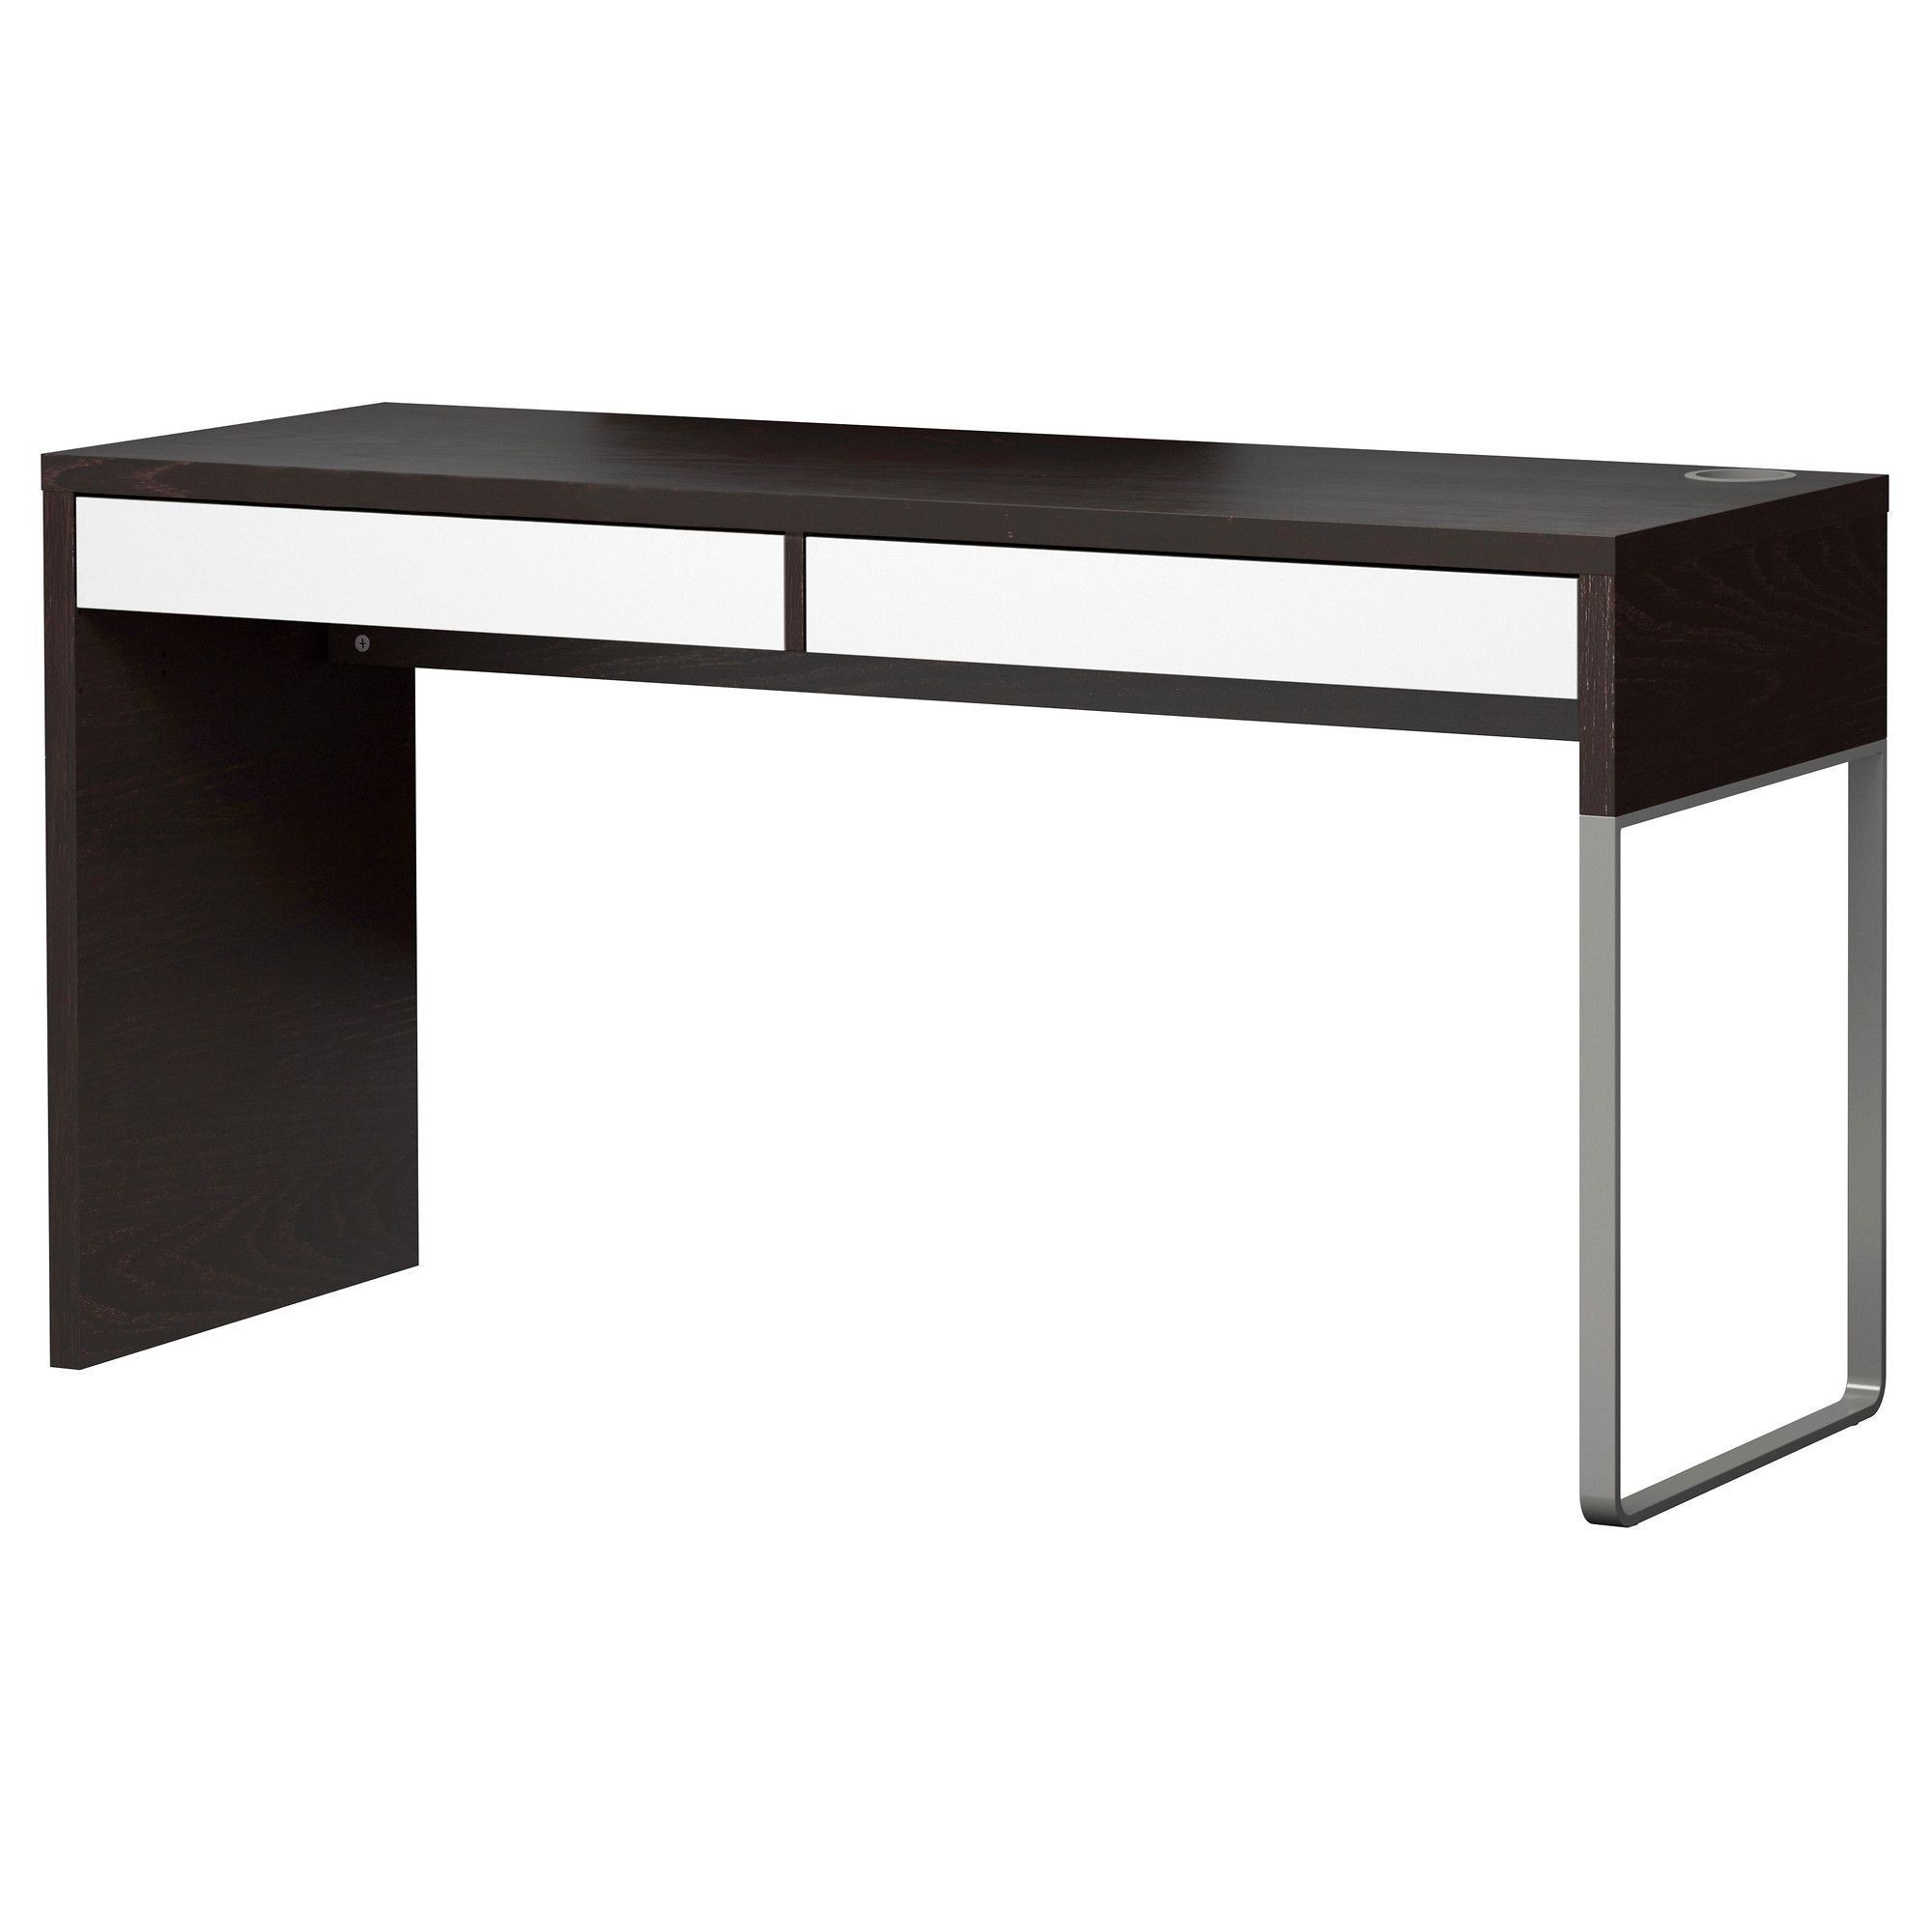 Ikea Us Furniture And Home Furnishings Ikea Micke Desk Micke Desk Ikea Desk